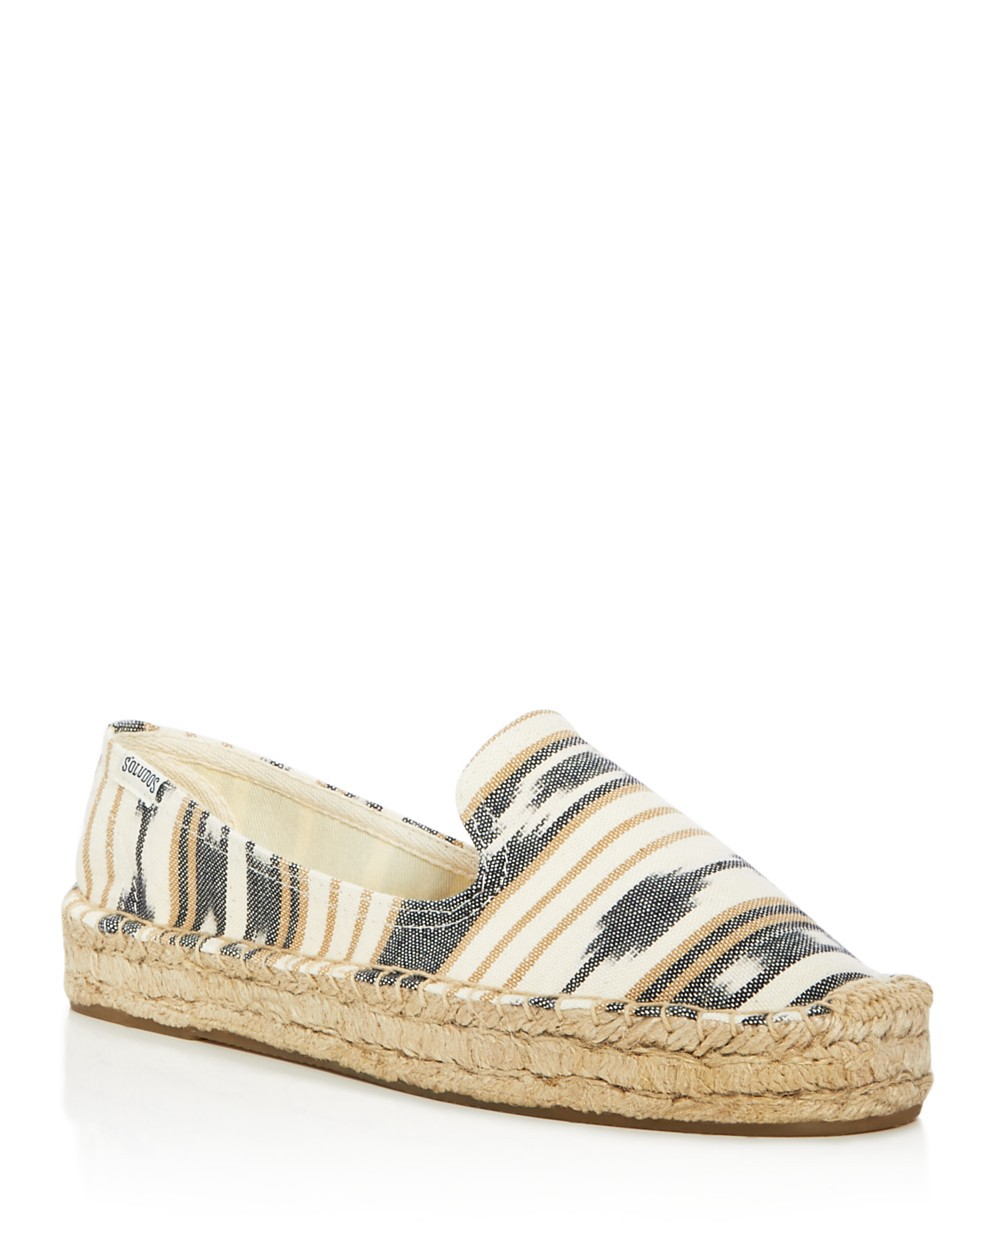 Soludos Low heels Soludos Ikat Platform Smoking Slipper Flats